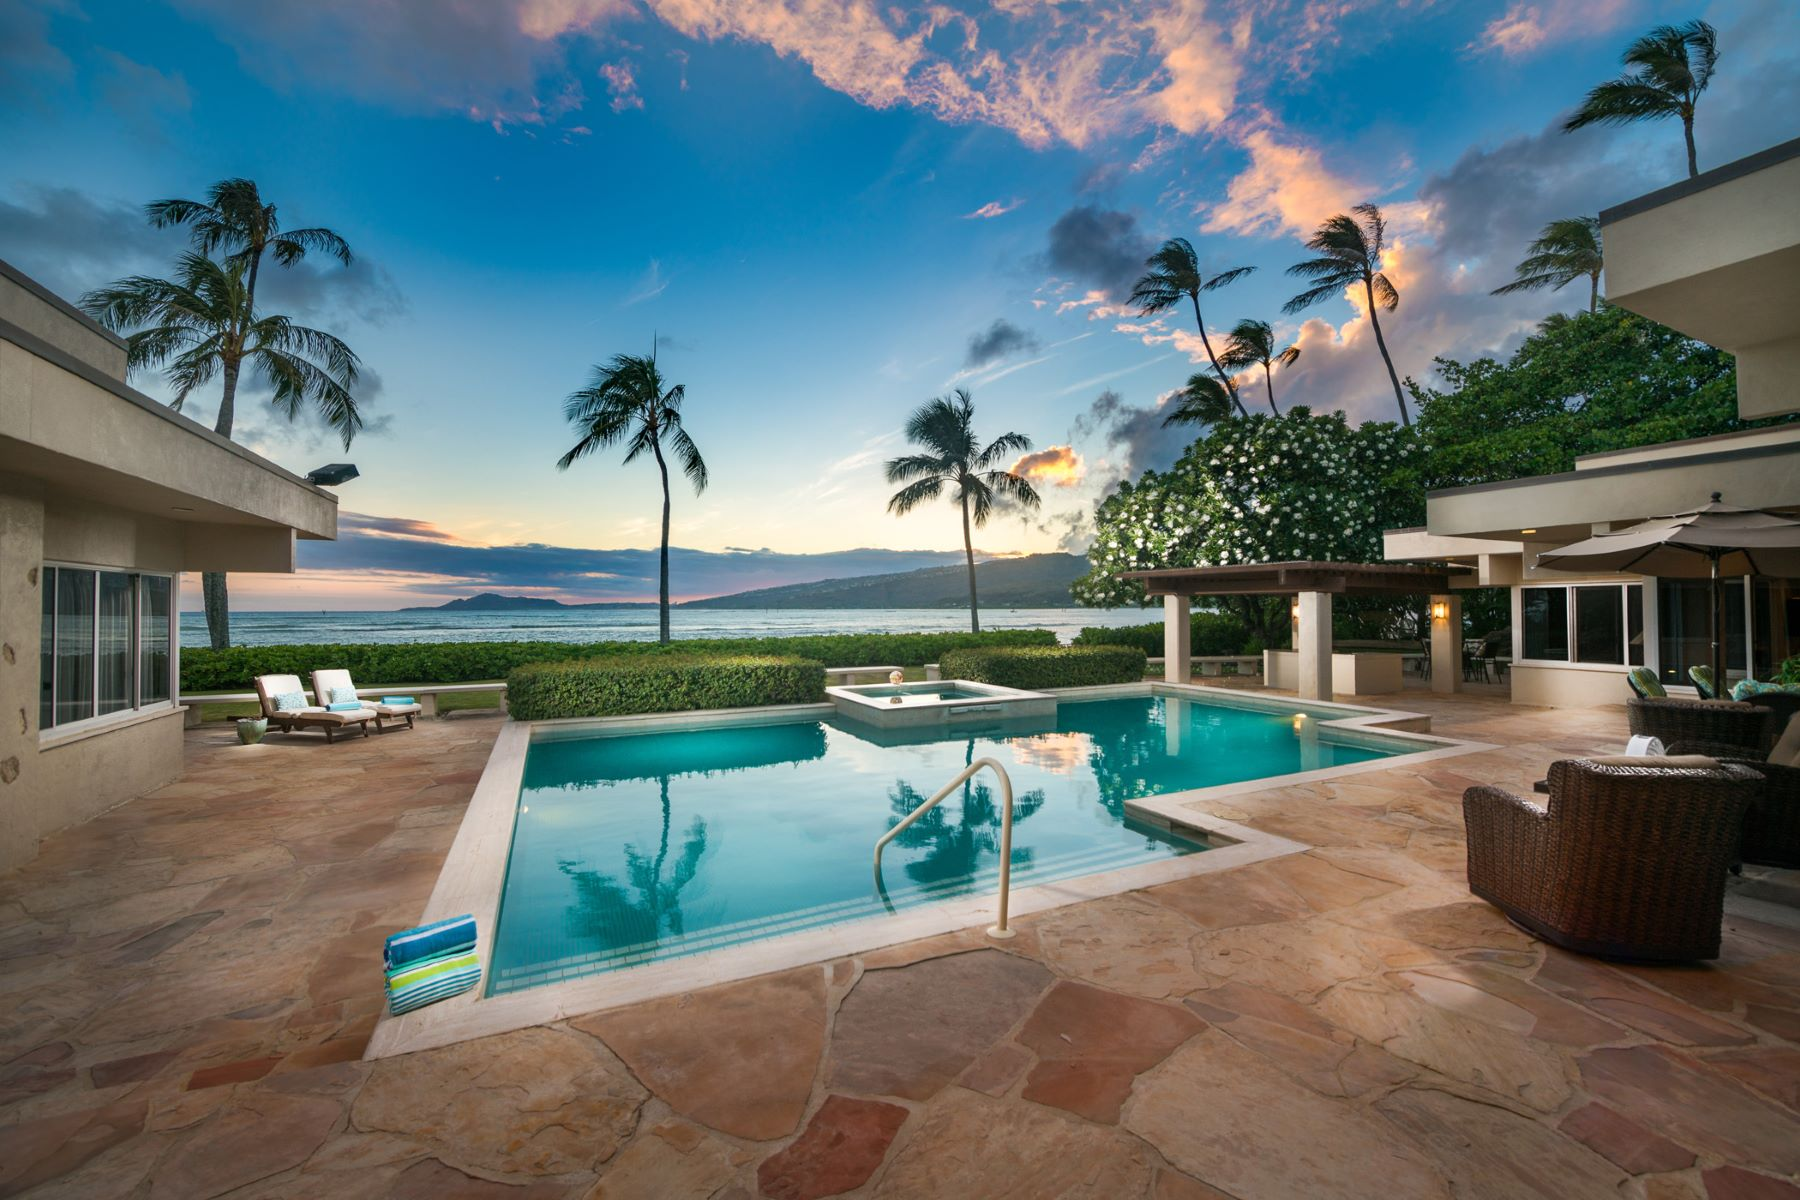 Single Family Home for Sale at Utopia by the Sea 387 Portlock Rd Honolulu, Hawaii 96825 United States